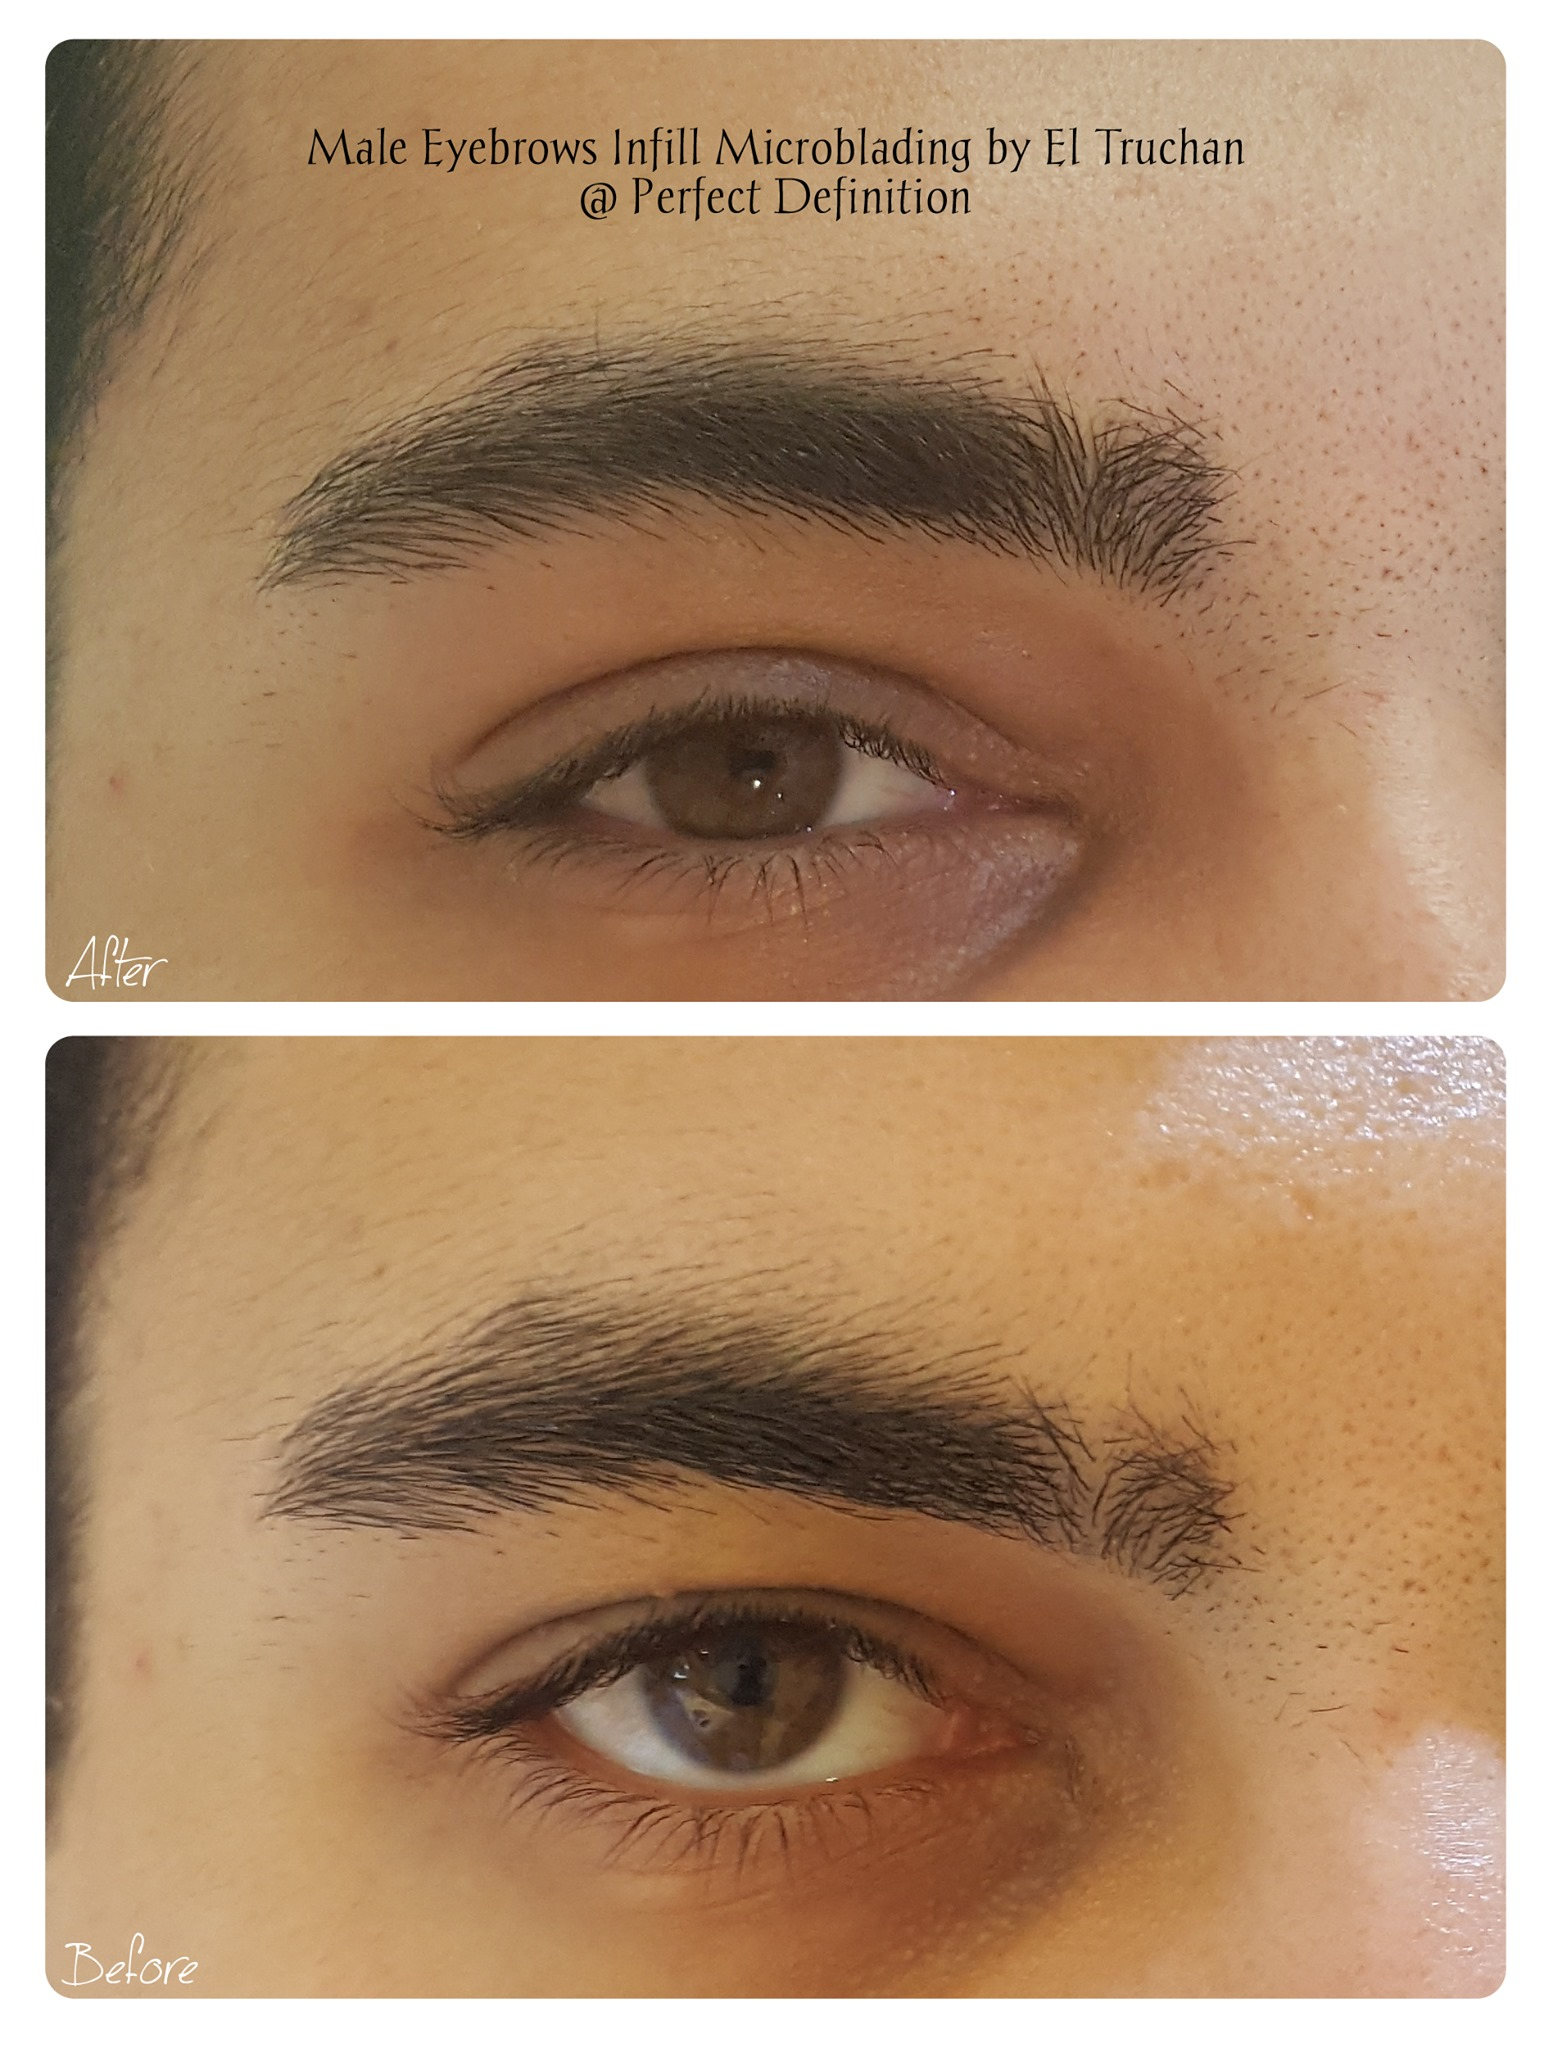 Male Eyebrows Infill Microblading by El